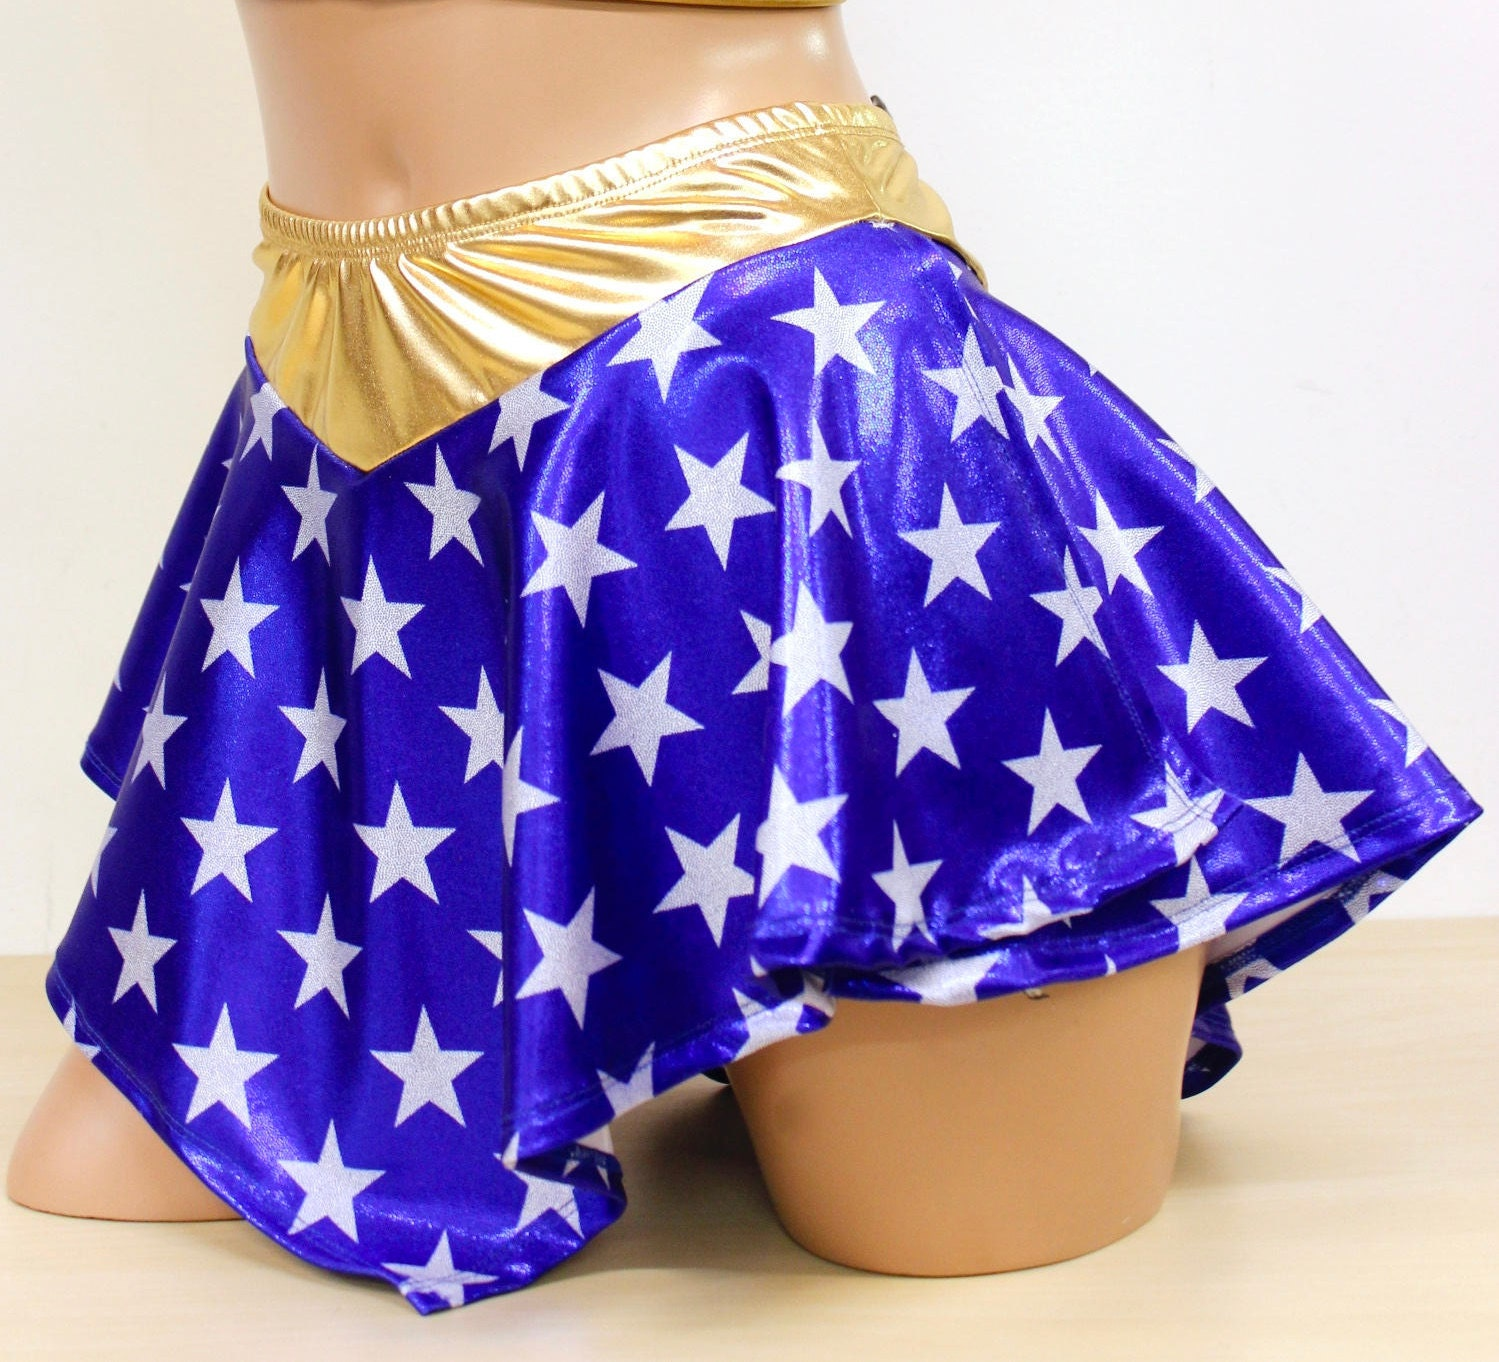 Beautiful Wonder Woman Skirt | Www.artfire.com/ext/shop/product_view/8u2026 | Flickr